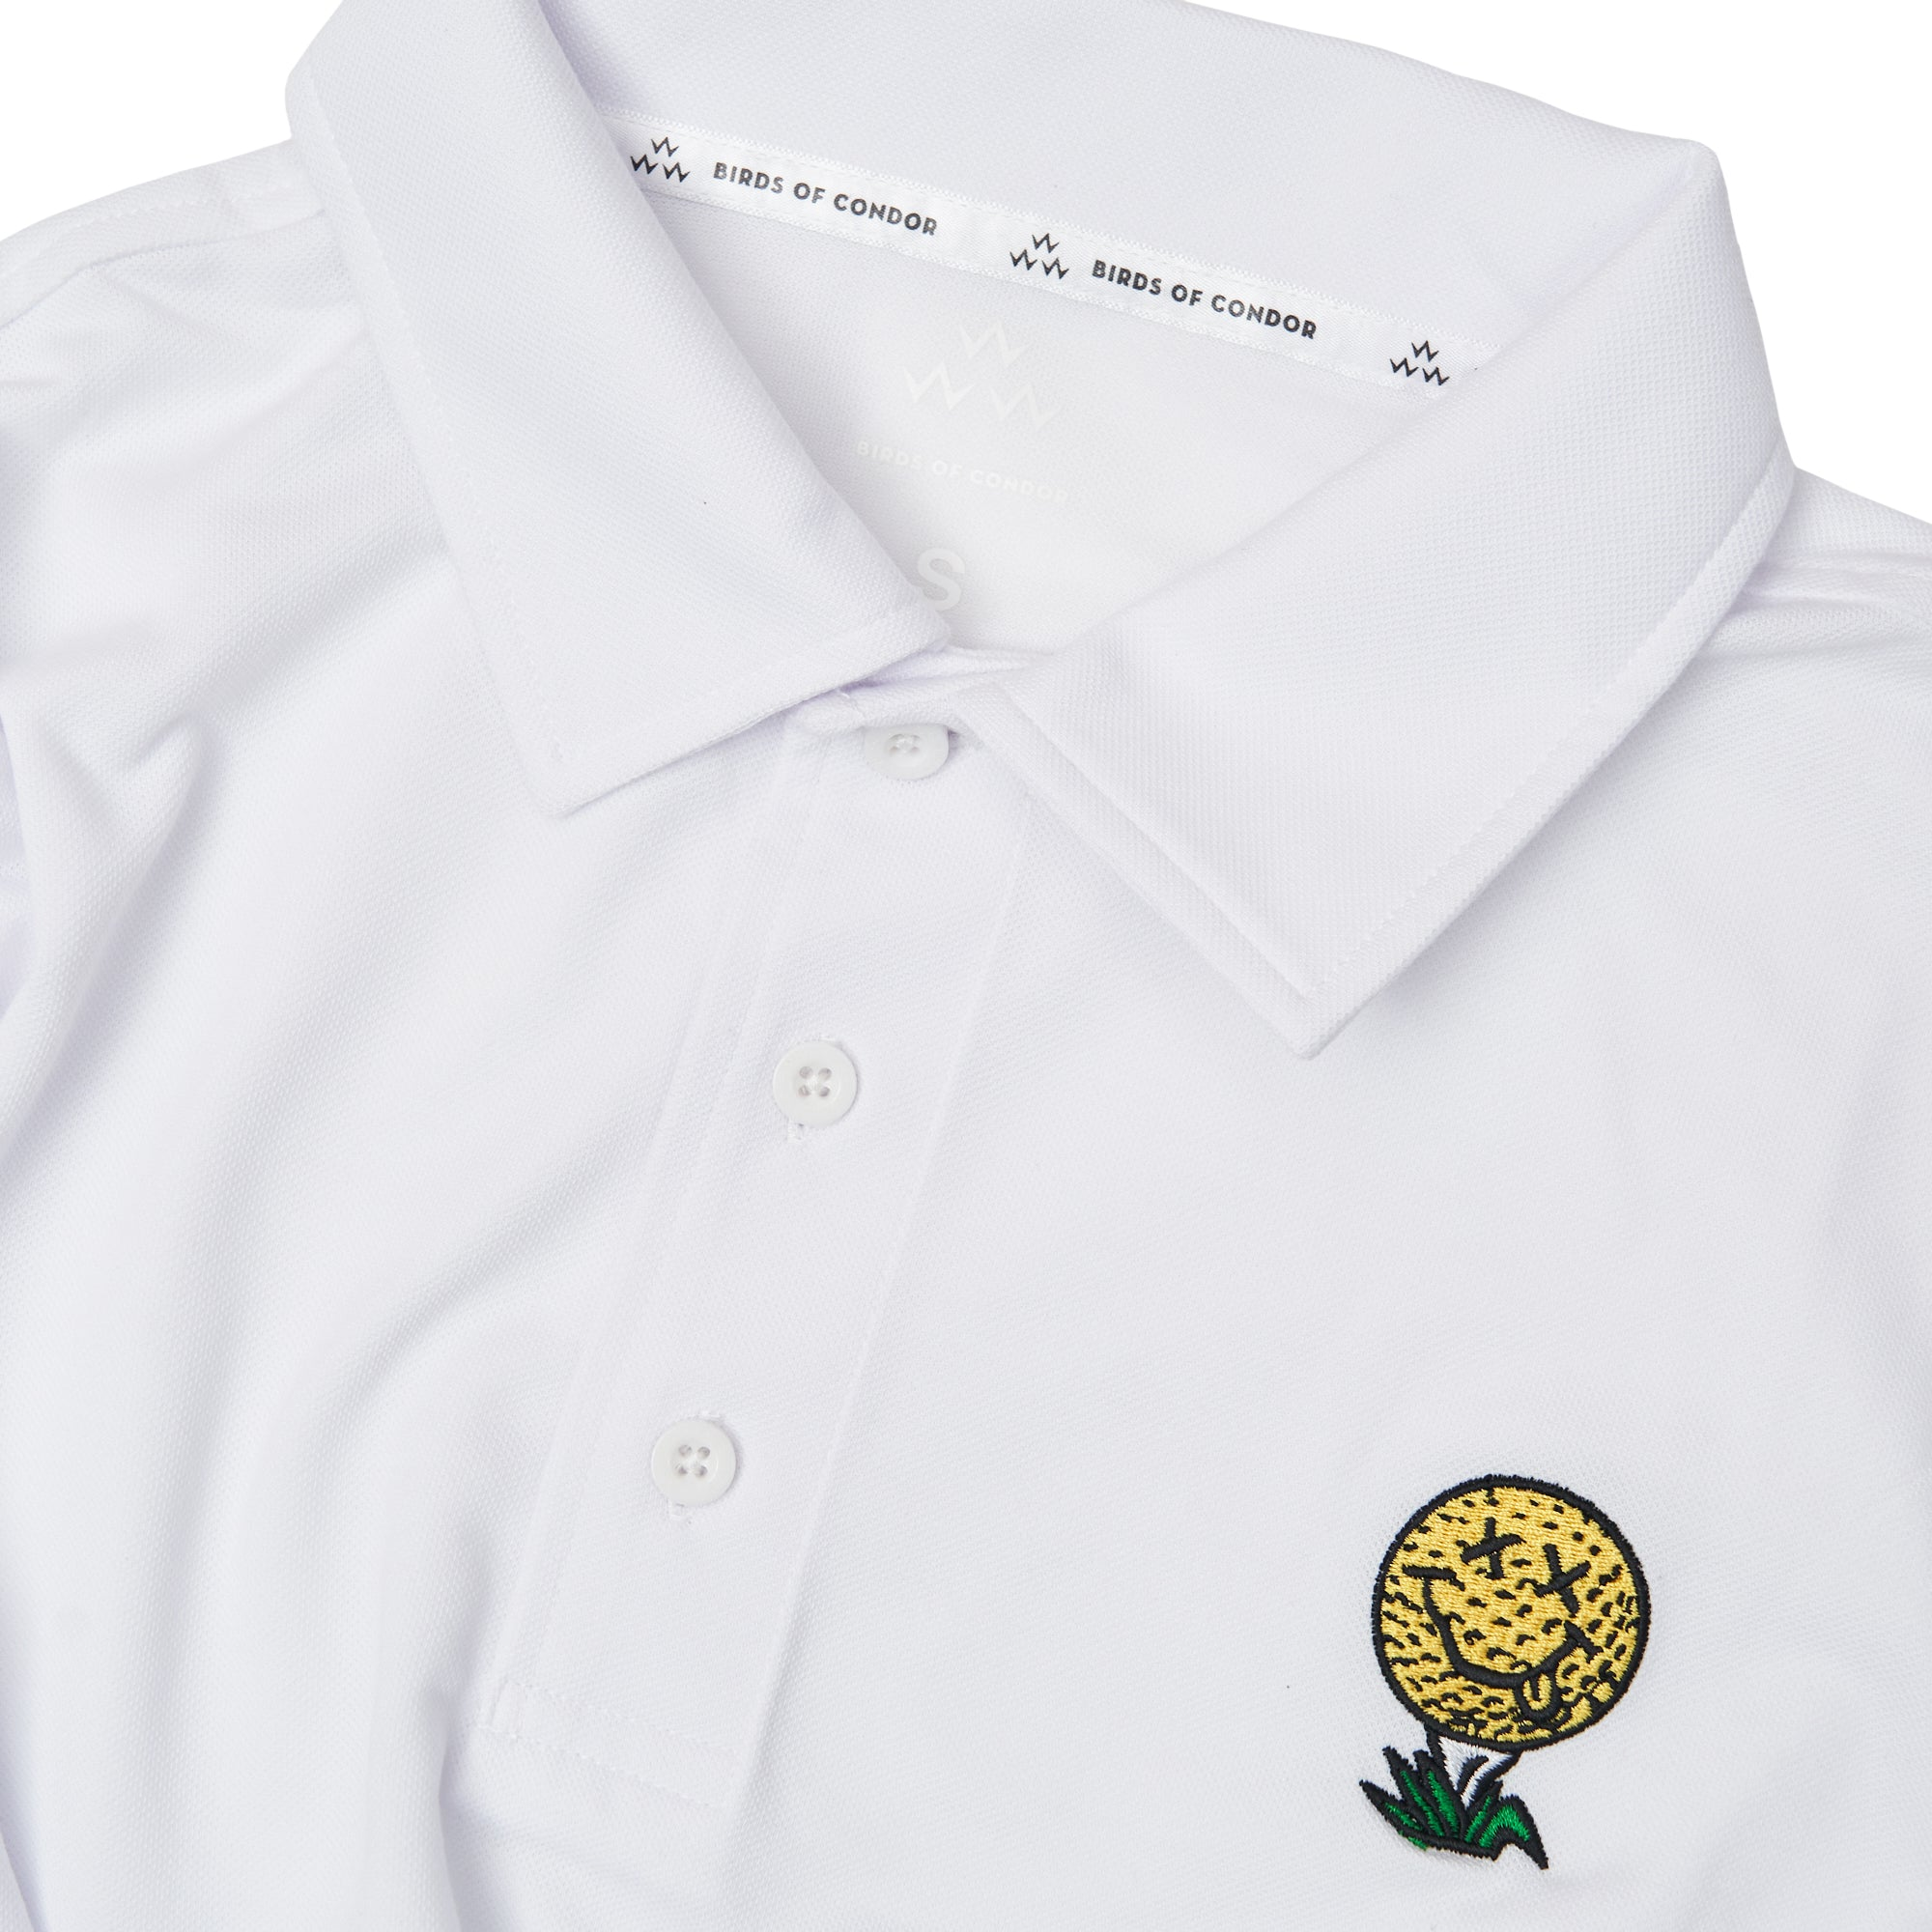 white-polo-golf-shirt-ball-tee-sport-birds-of-condor